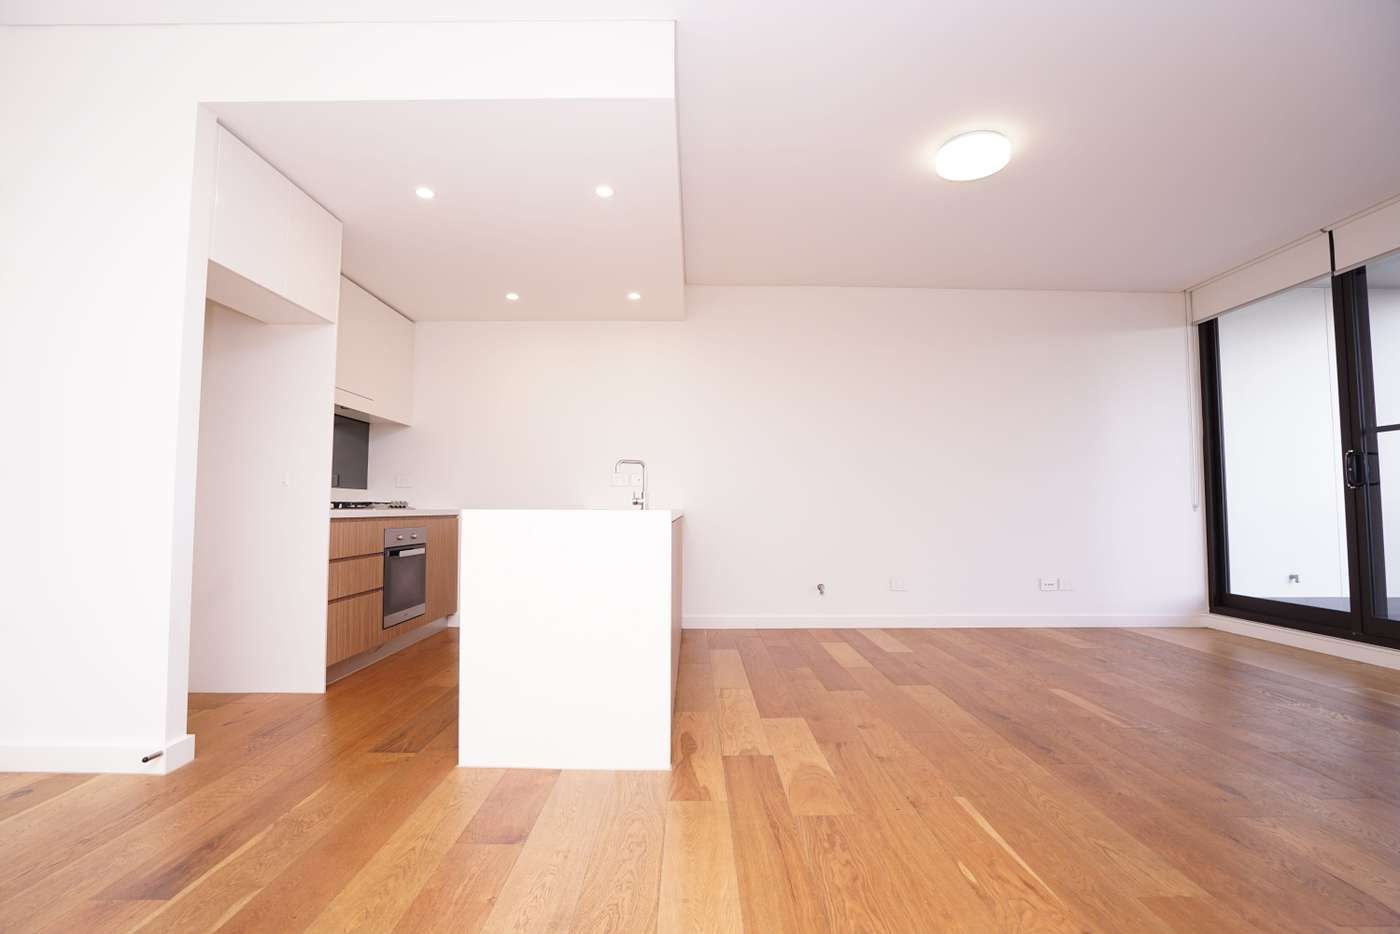 Fifth view of Homely apartment listing, 502/21 Verona Drive, Wentworth Point NSW 2127